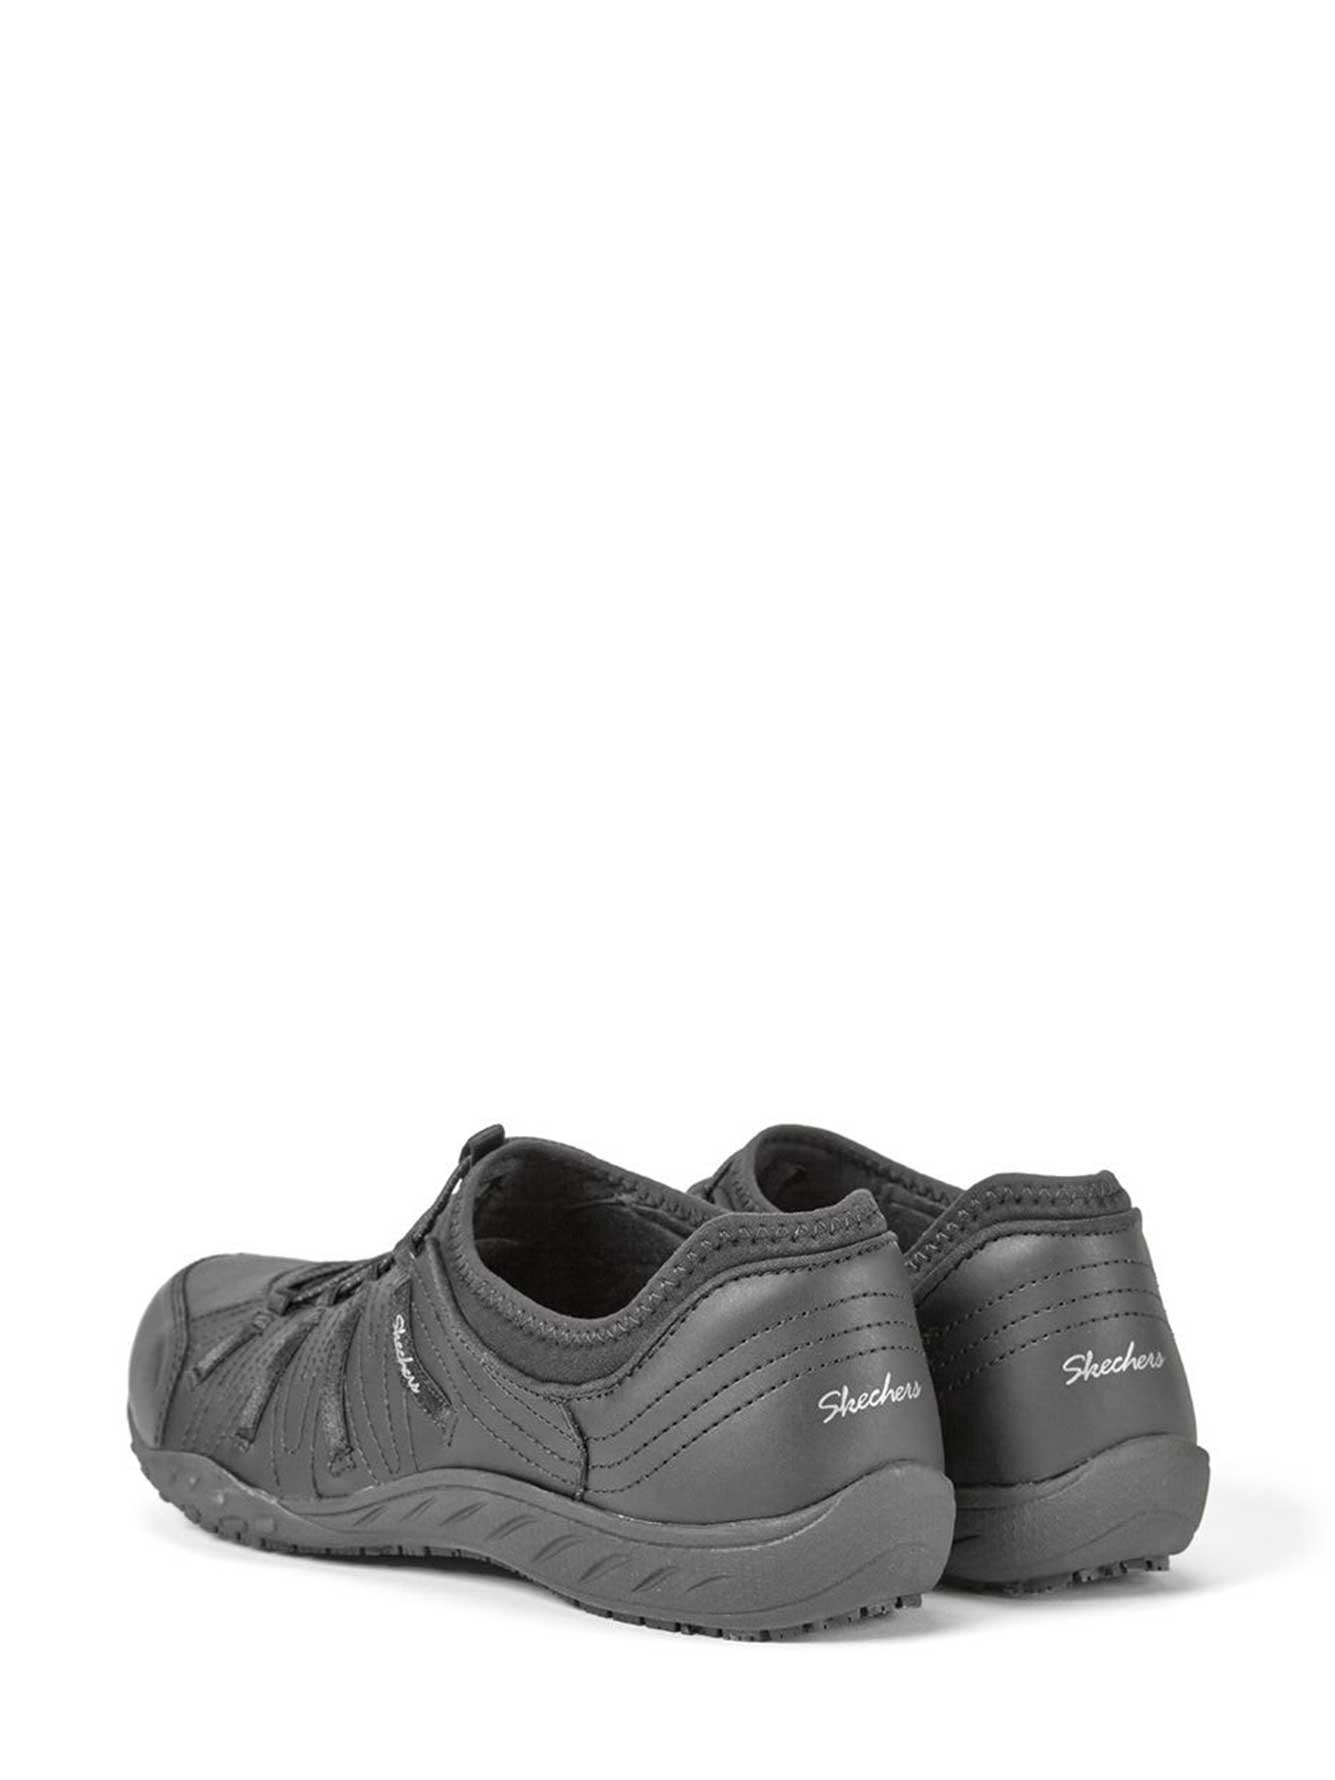 skechers relaxed fit shoes wide width